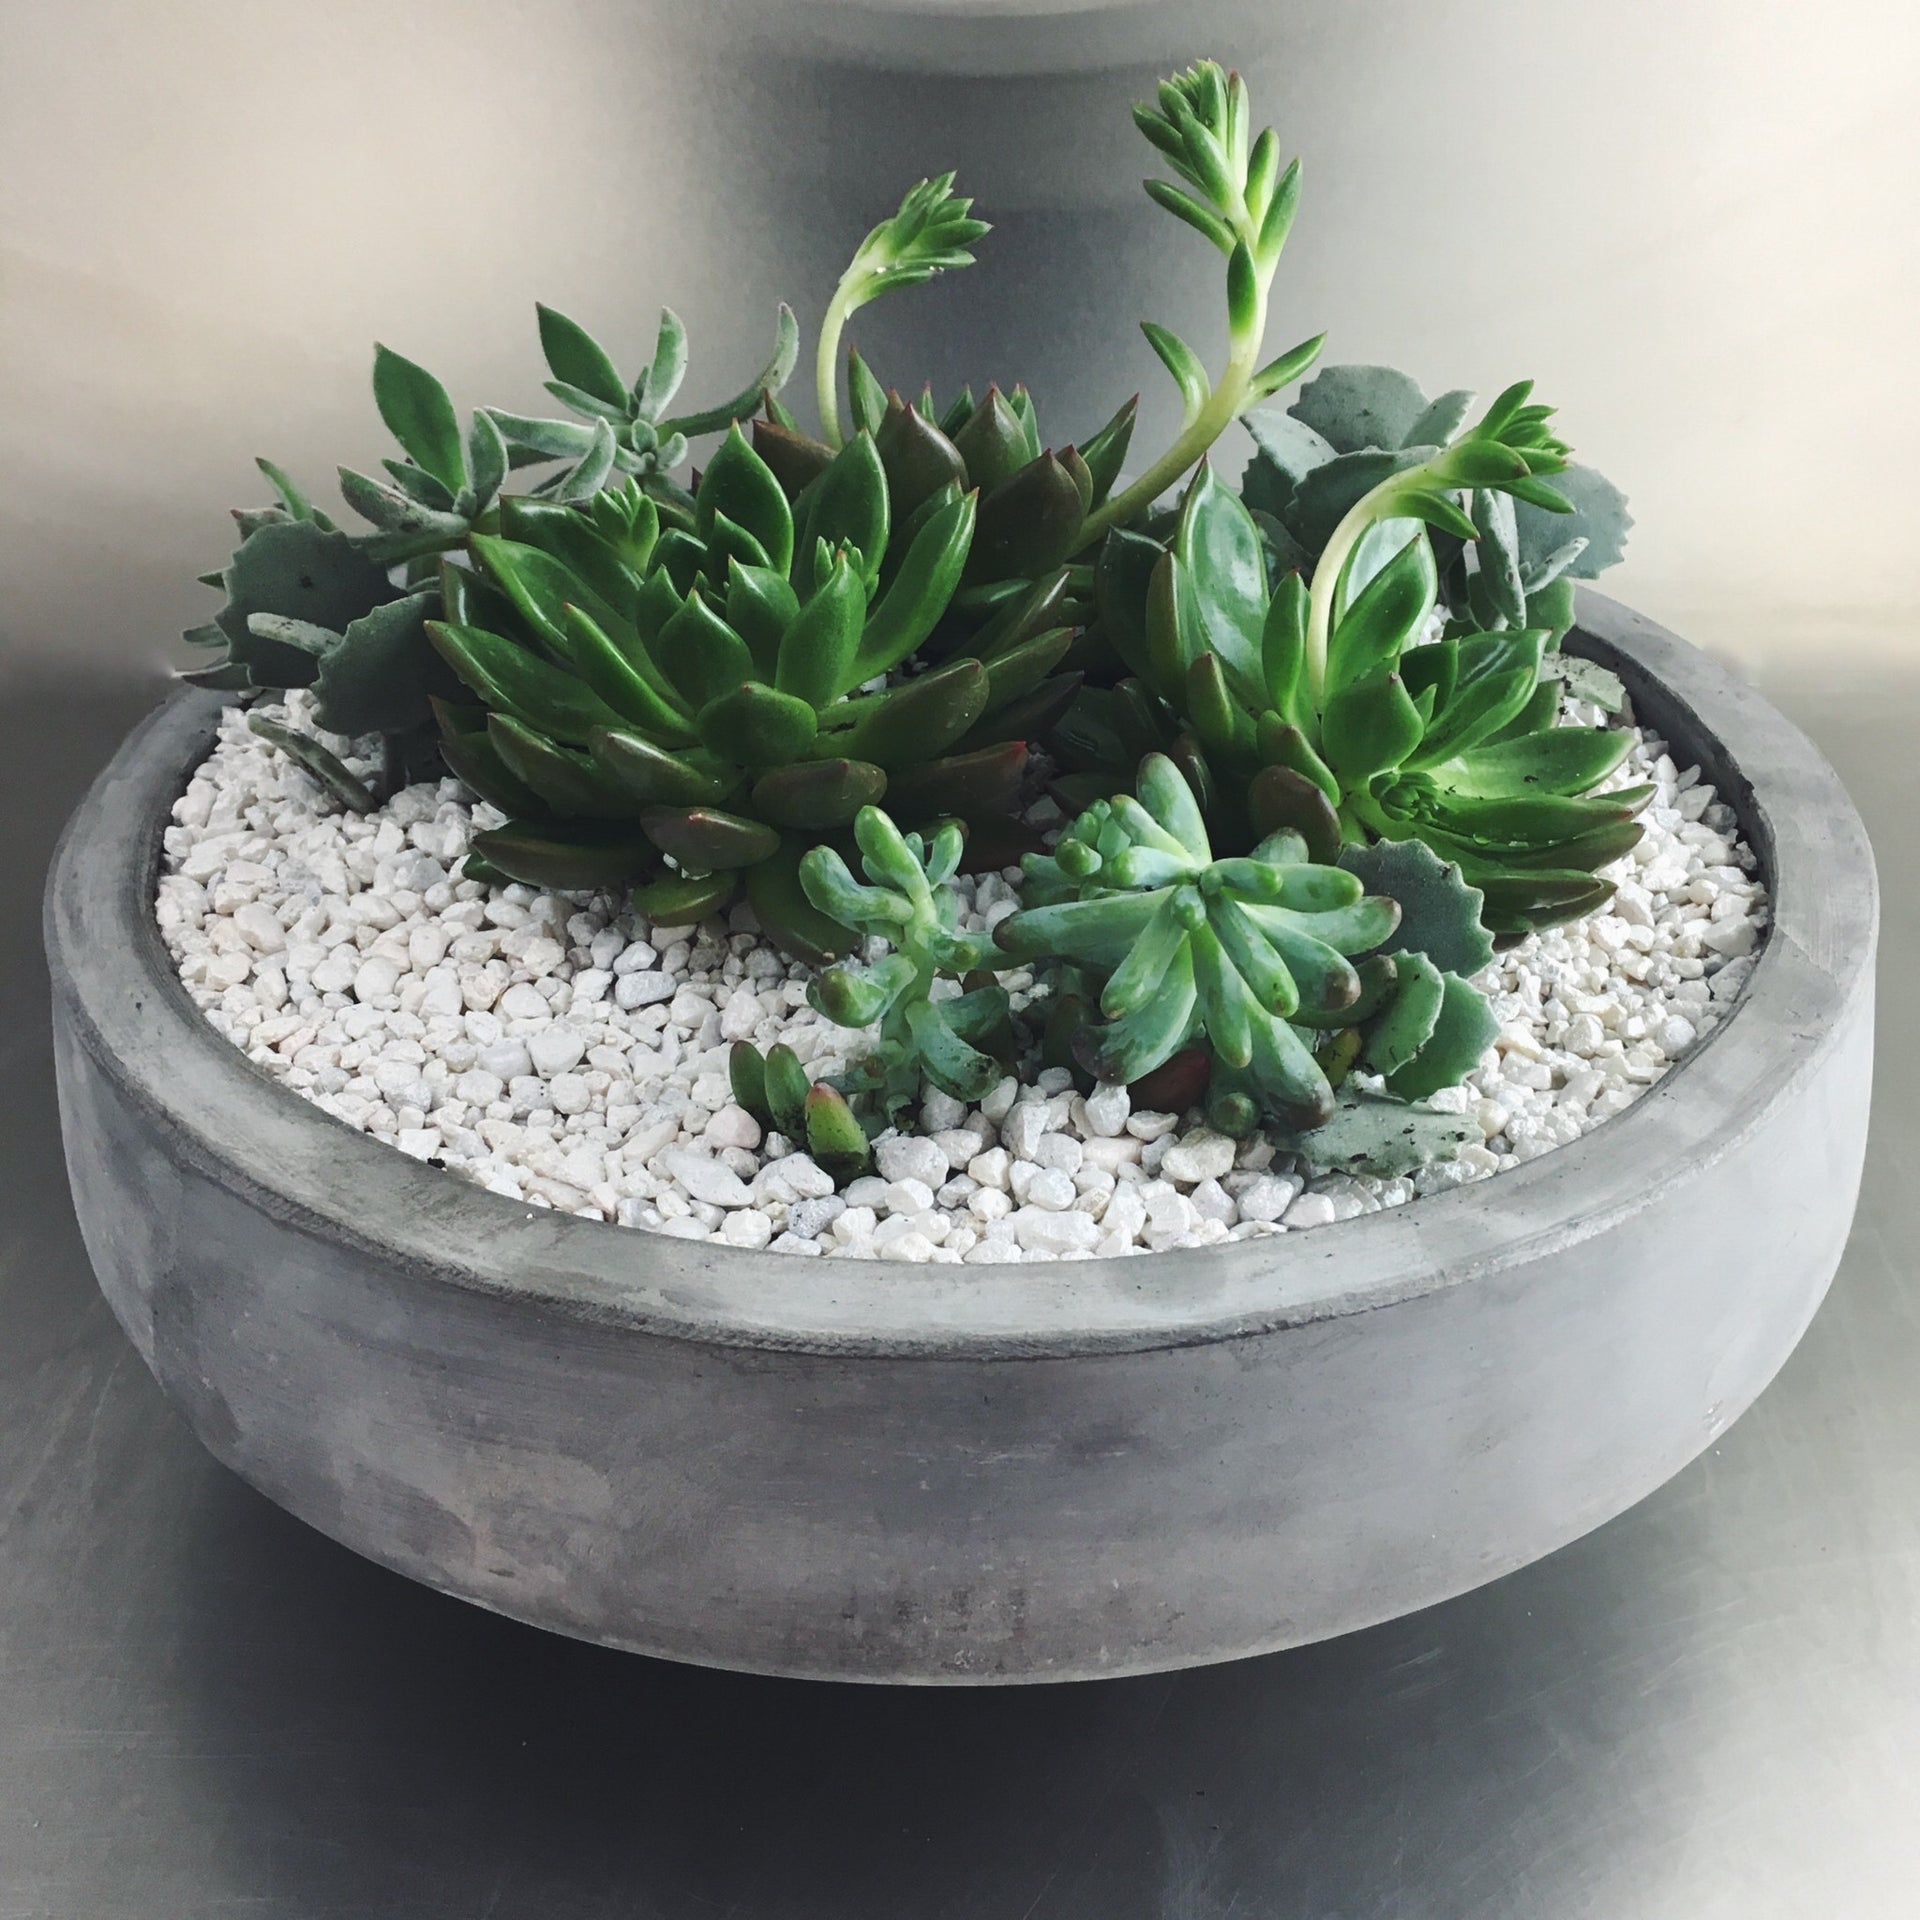 Large succulent garden in a low cement bowl with white pebbles.